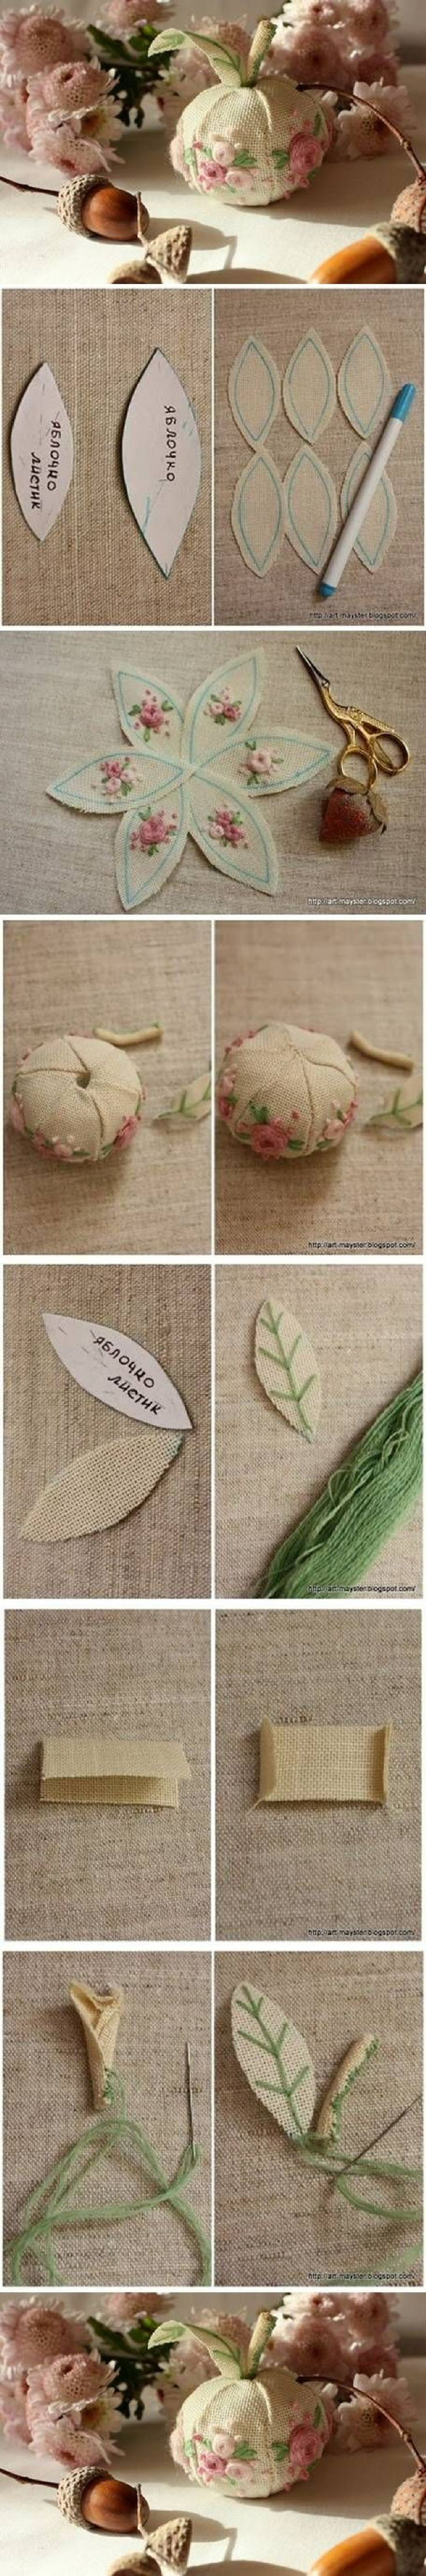 best embroidery images on pinterest embroidery flowers and